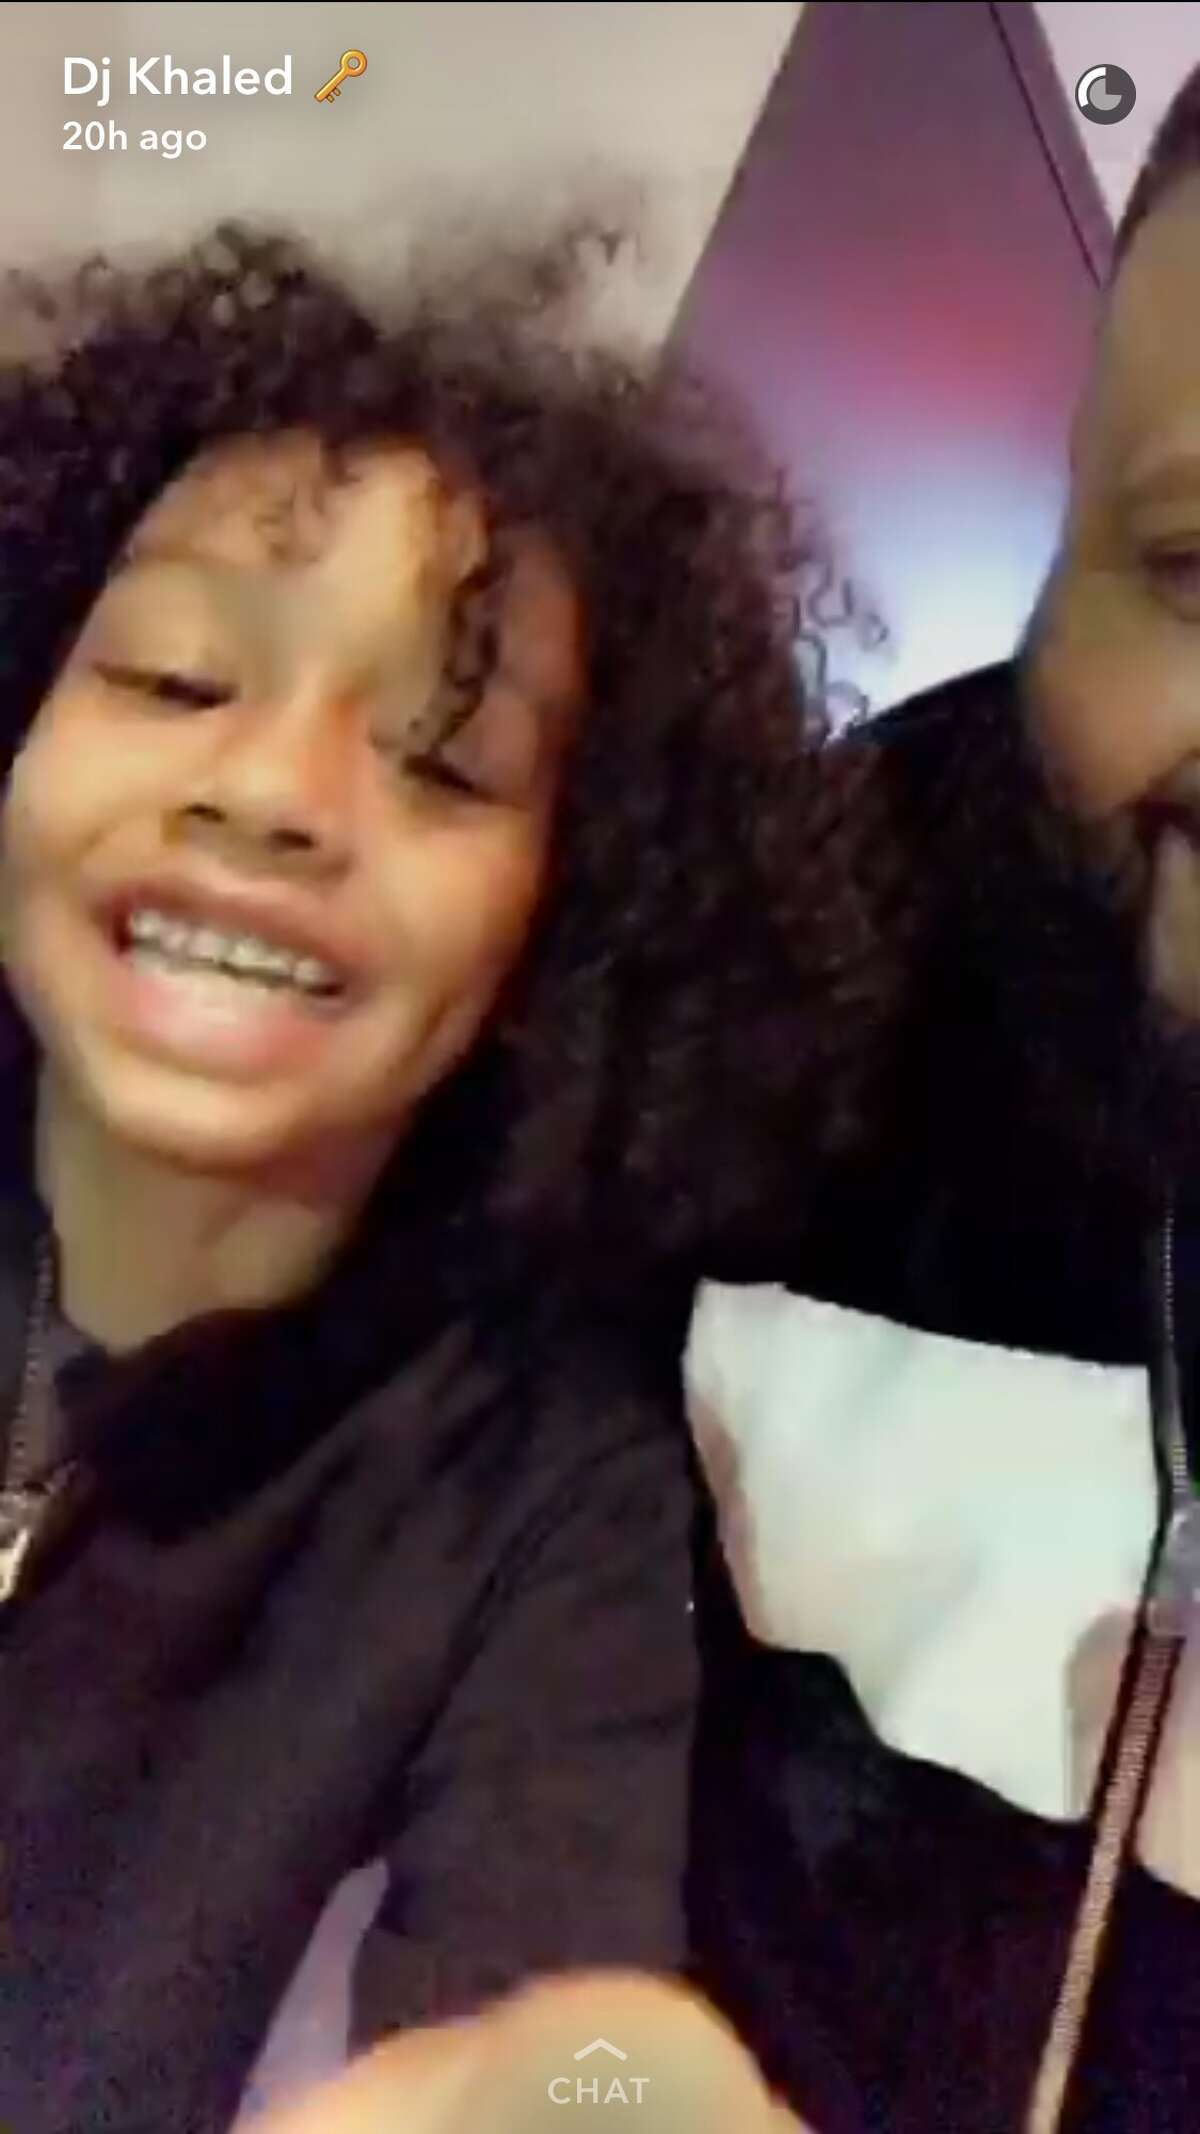 DJ Khaled was inspired to Snapchat with an adorable Houston fan.